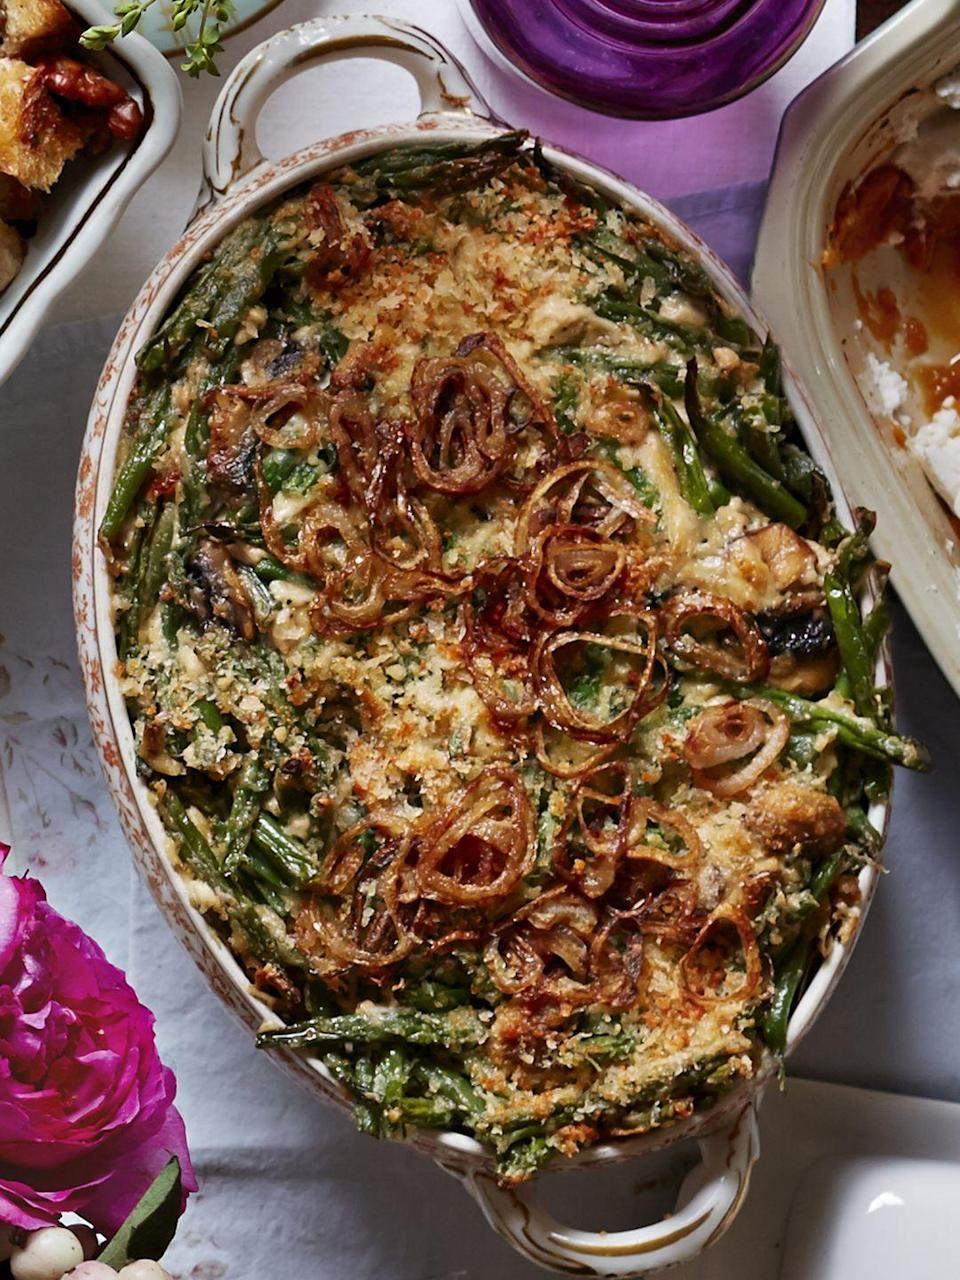 """<p>It's just not Thanksgiving without green bean casseroles. Sure, there are <a href=""""https://www.countryliving.com/food-drinks/recipes/a14792/green-bean-casserole-thanksgiving-recipes/"""" rel=""""nofollow noopener"""" target=""""_blank"""" data-ylk=""""slk:healthier versions"""" class=""""link rapid-noclick-resp"""">healthier versions</a>, but this isn't the time for that. Give the onions plenty of time to caramelize—30-40 minutes isn't too long—and use a really good dry white wine like a Riesling, a Sauvignon Blanc, or even Champagne. You can use the rest in the cocktail, below. </p><p><strong><a href=""""https://www.countryliving.com/food-drinks/recipes/a14792/green-bean-casserole-thanksgiving-recipes/"""" rel=""""nofollow noopener"""" target=""""_blank"""" data-ylk=""""slk:Get the recipe"""" class=""""link rapid-noclick-resp"""">Get the recipe</a>.</strong></p><p><a class=""""link rapid-noclick-resp"""" href=""""https://www.amazon.com/Lodge-Quart-Dutch-Pre-Seasoned-Handle/dp/B00063RWYI/?tag=syn-yahoo-20&ascsubtag=%5Bartid%7C10050.g.34645538%5Bsrc%7Cyahoo-us"""" rel=""""nofollow noopener"""" target=""""_blank"""" data-ylk=""""slk:SHOP DUTCH OVENS"""">SHOP DUTCH OVENS</a><br></p>"""